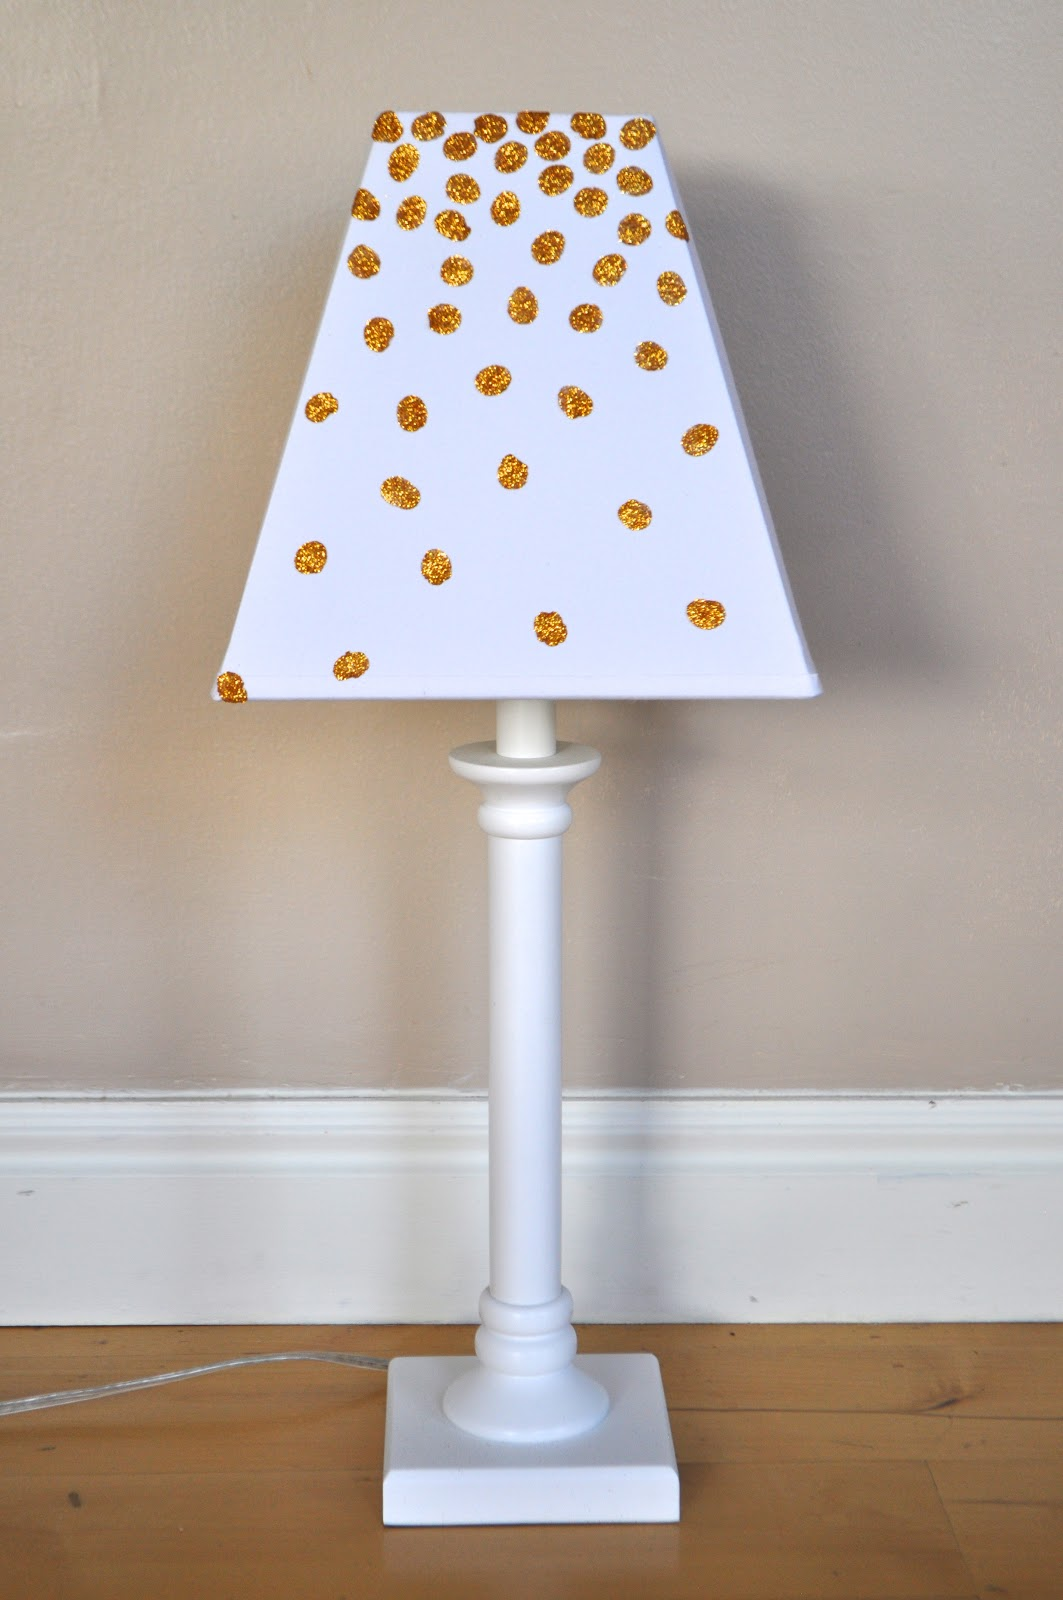 I am momma hear me roar polkadot glittered lamp shade i made sure to clean off the shade well first it was a bit dusty and the dust would also have ruined the project making the dots fall off aloadofball Choice Image